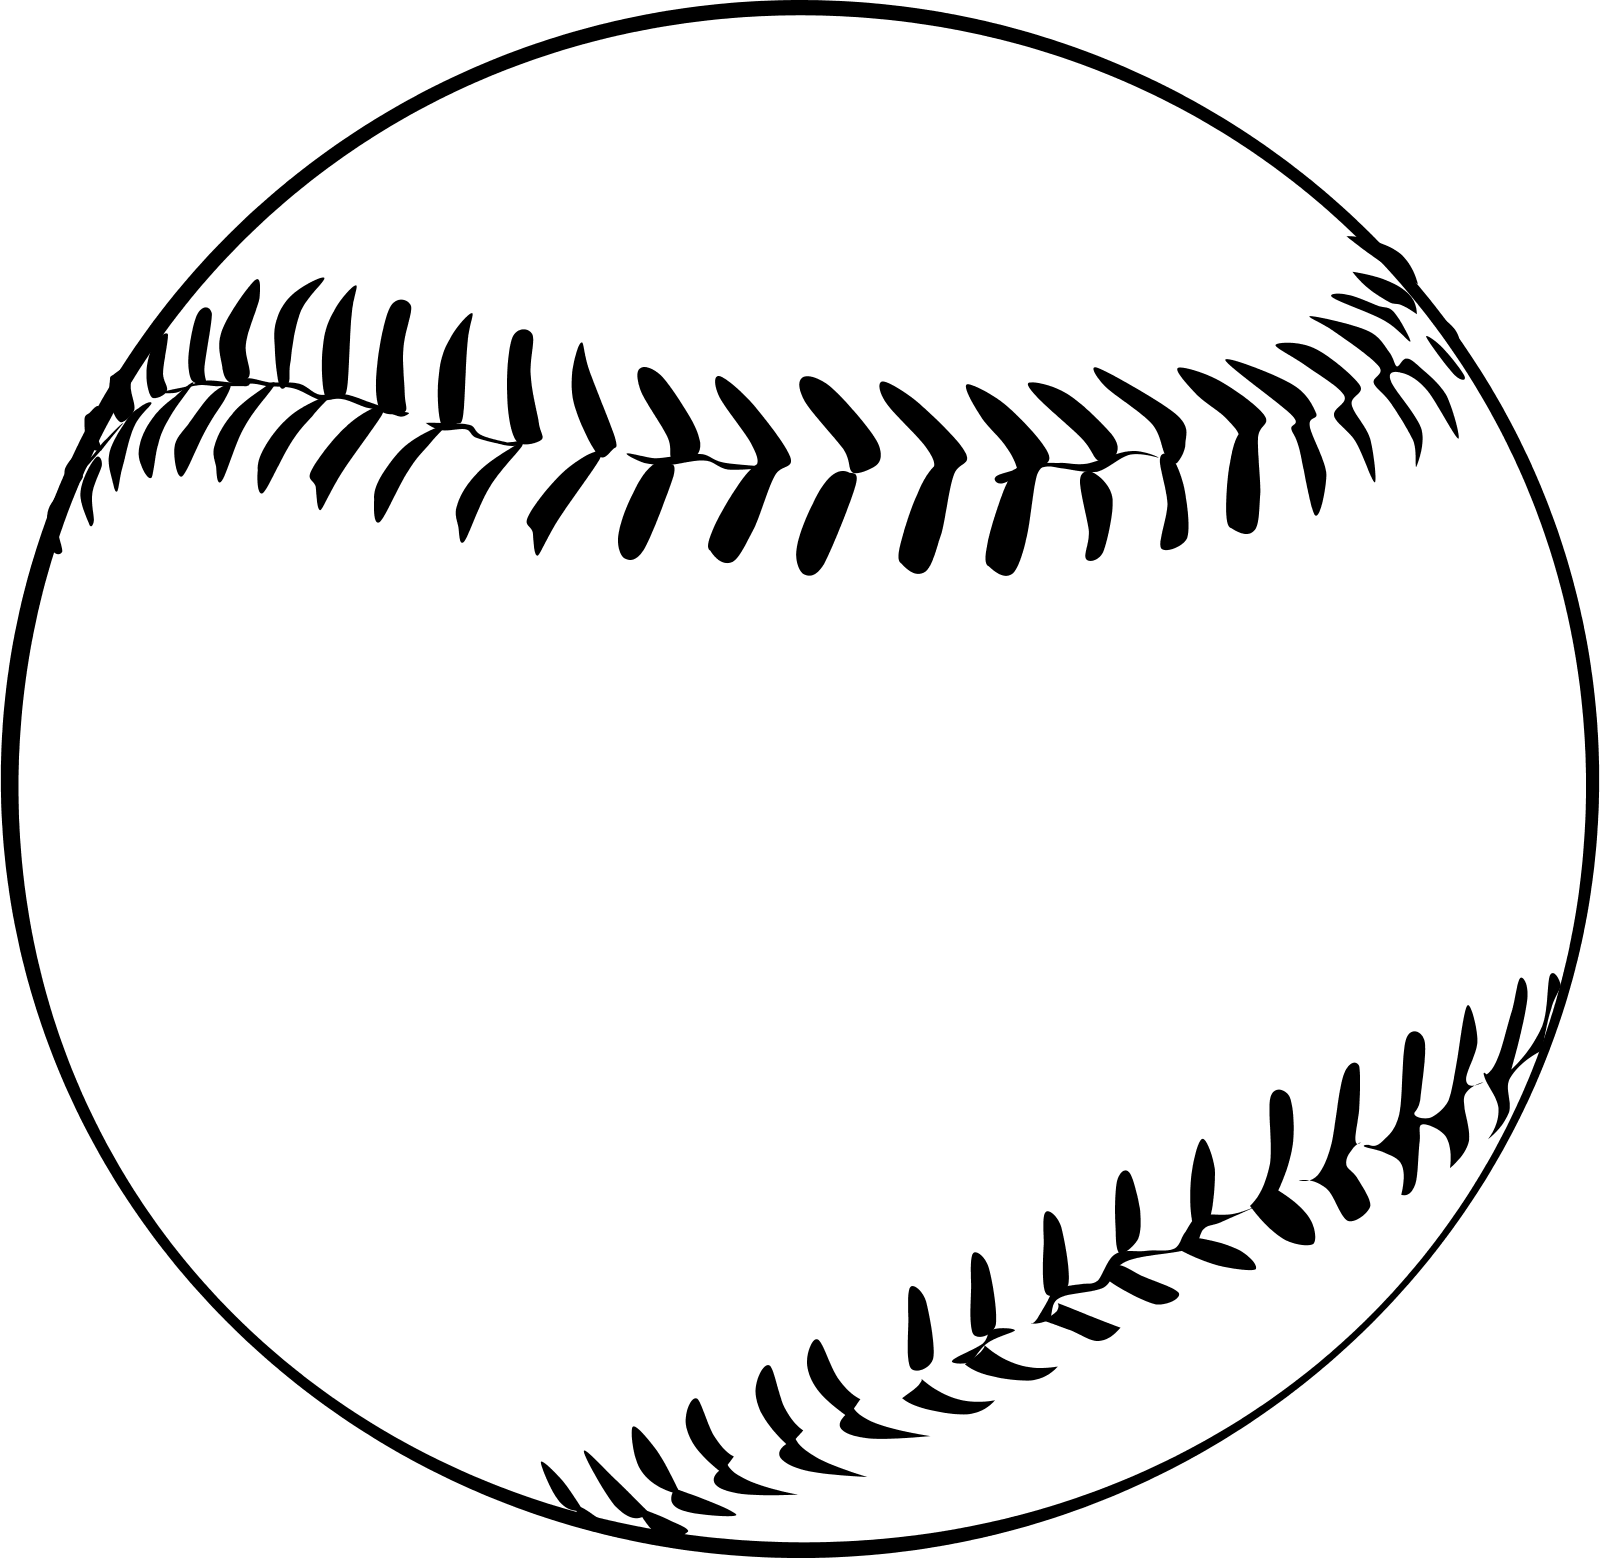 Baseball black and white. Oreo clipart outline